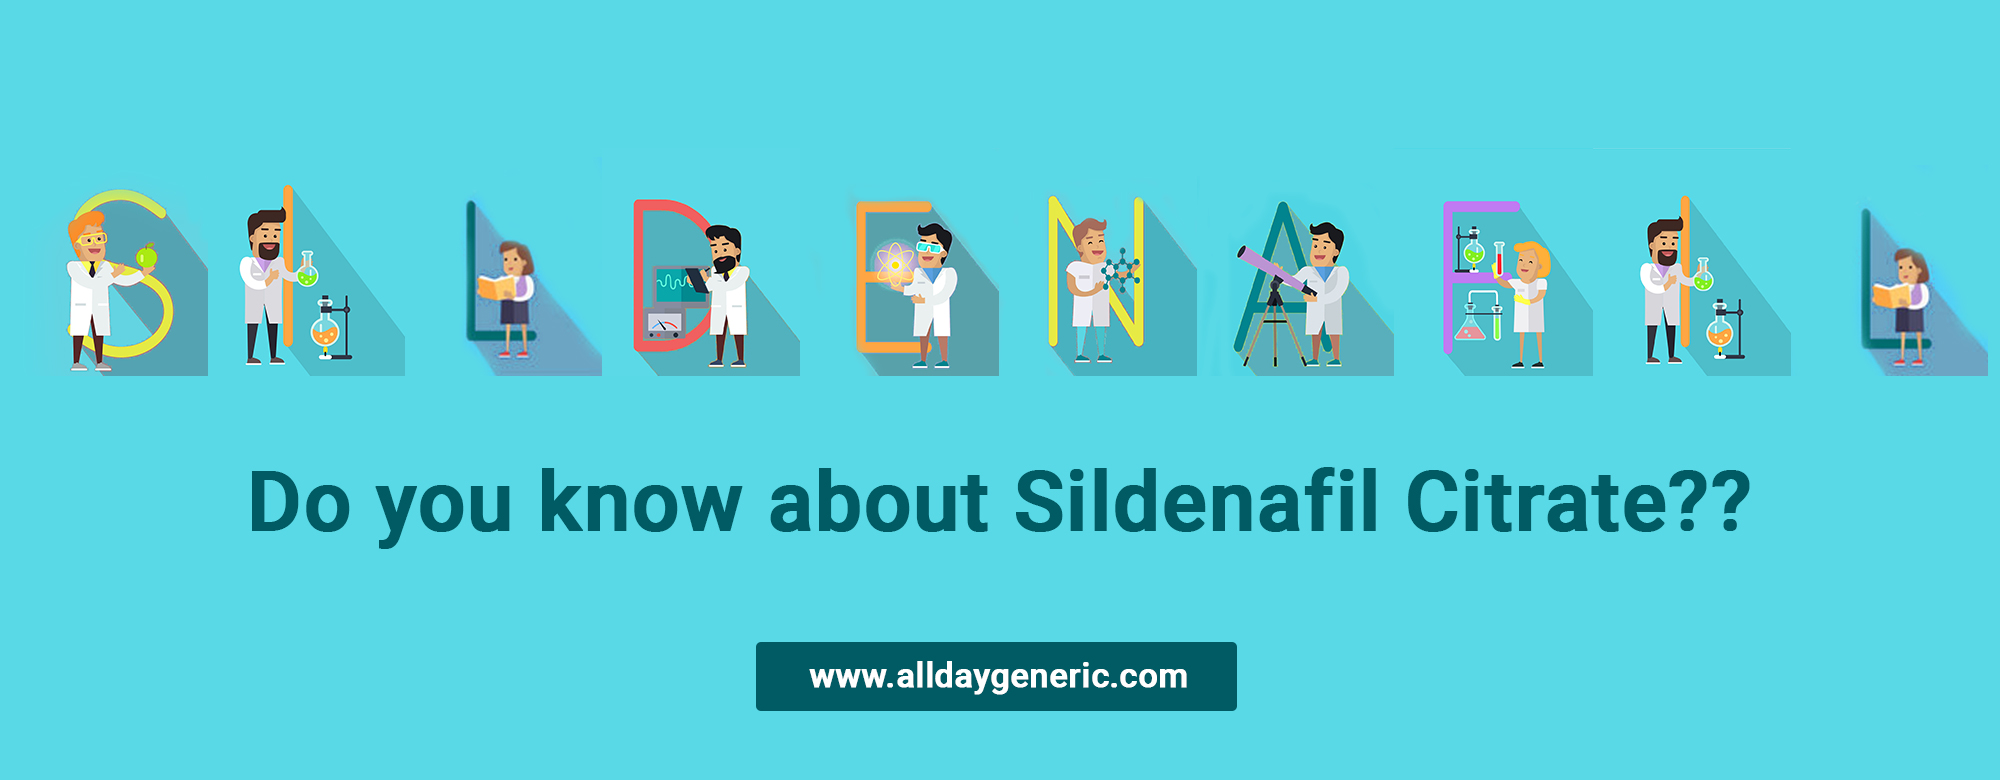 Know about Sildenafil Citrate Cenforce 100 Pills